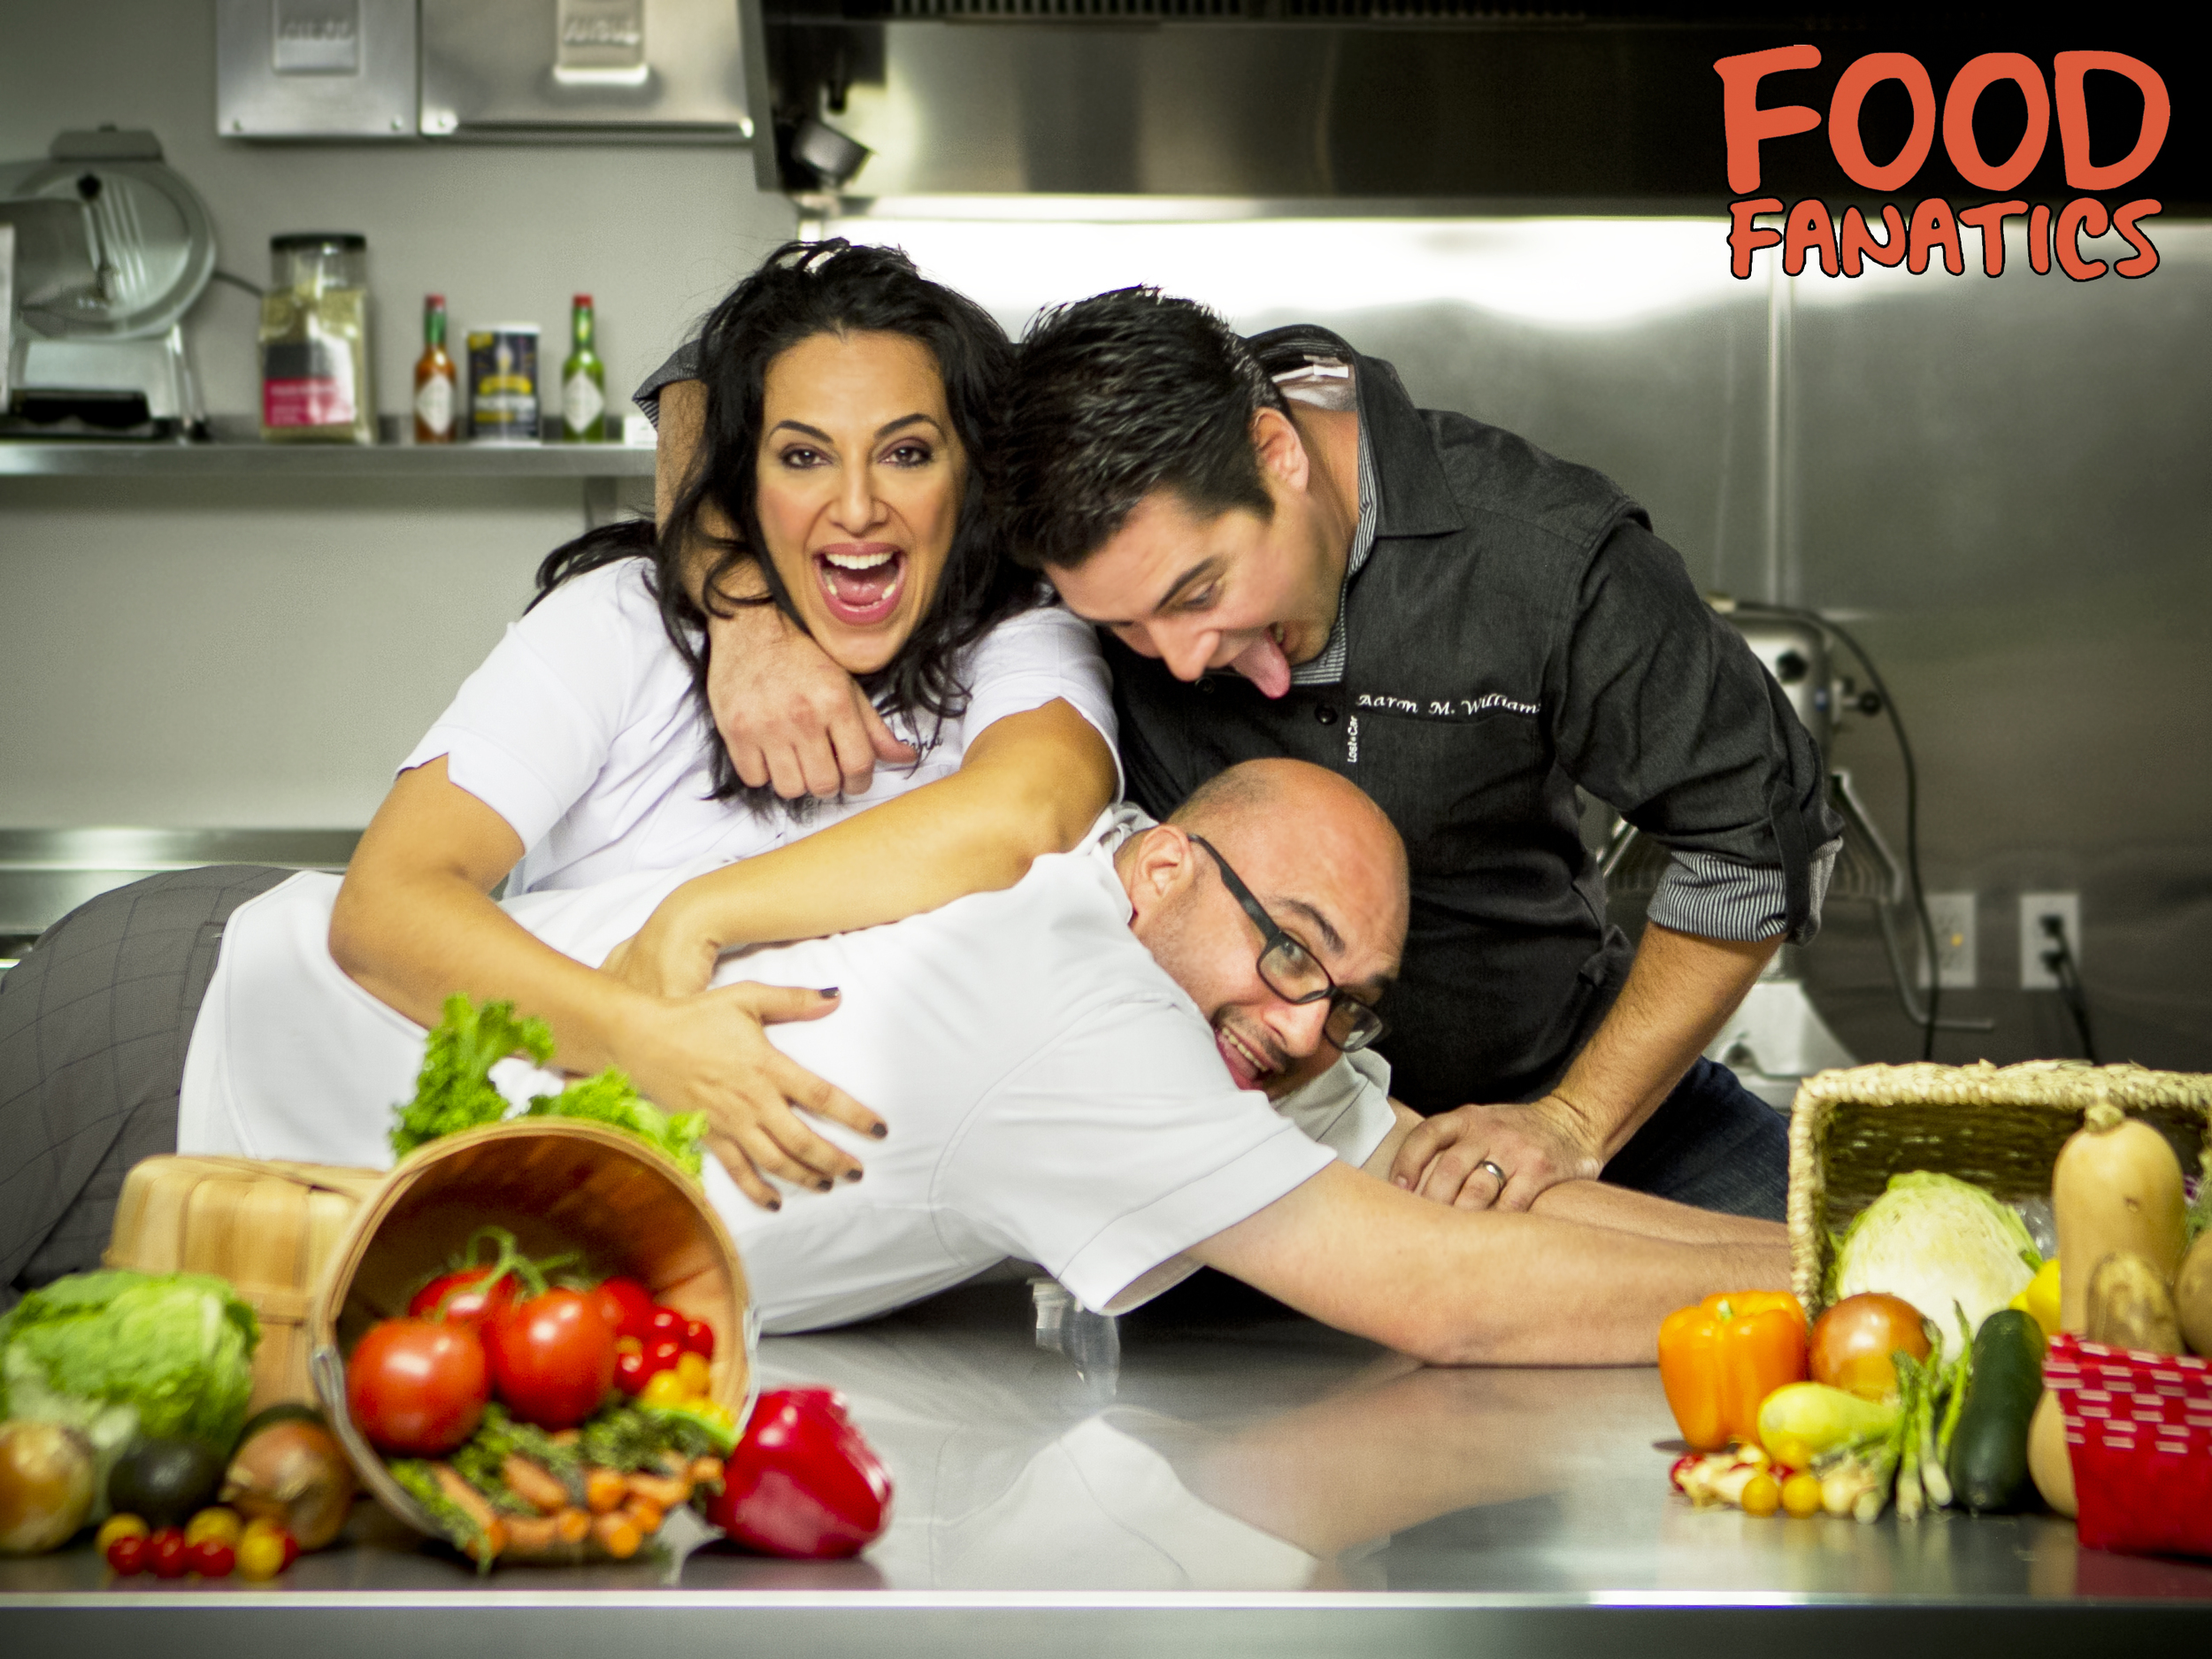 Stills for  Food Fanatics.  Co:Campbell's Soup